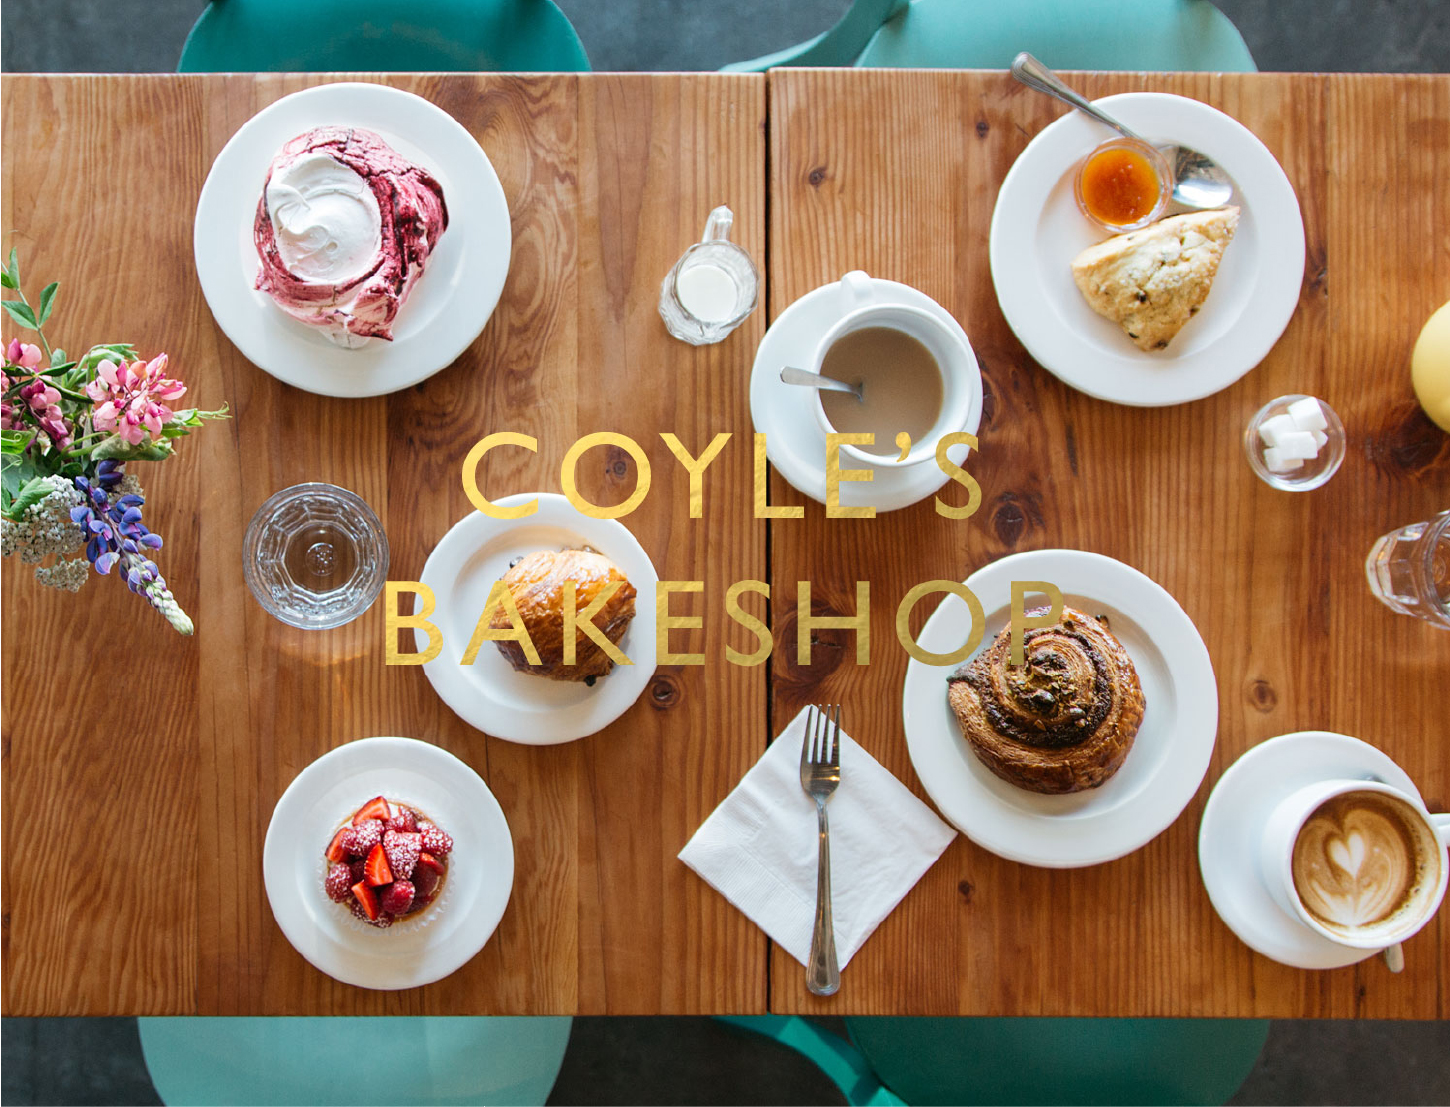 coyles bakeshop website homepage pastry photo with logo